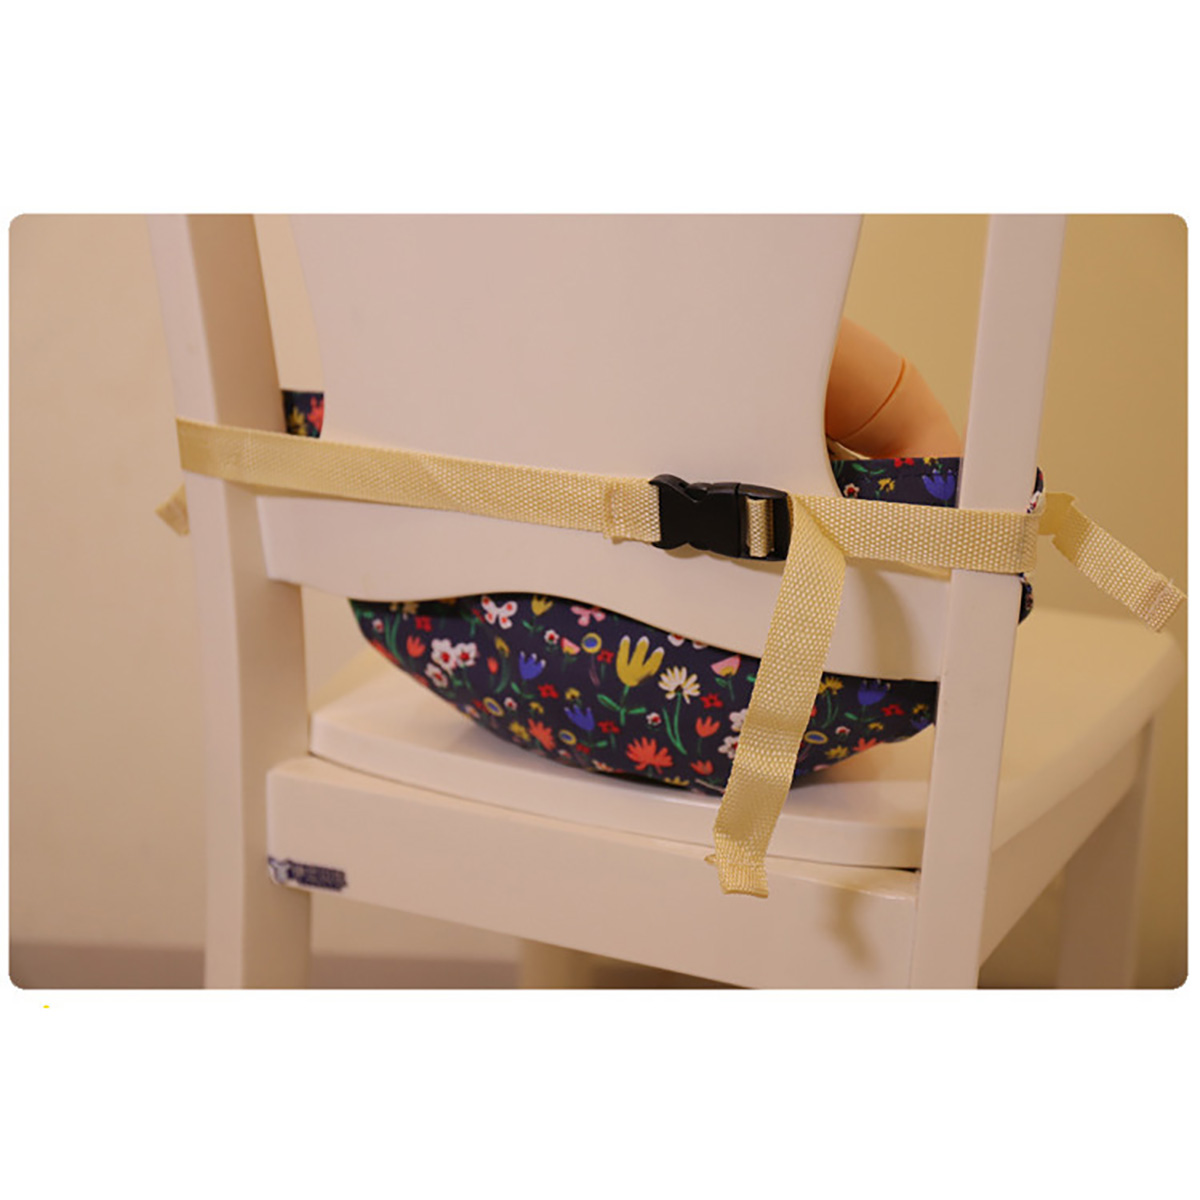 New Children Furniture Stools Accessories Baby Hip Safety Strap Seat Belt For Dining Eating High Chair Outdoor Chair Carrier Sof